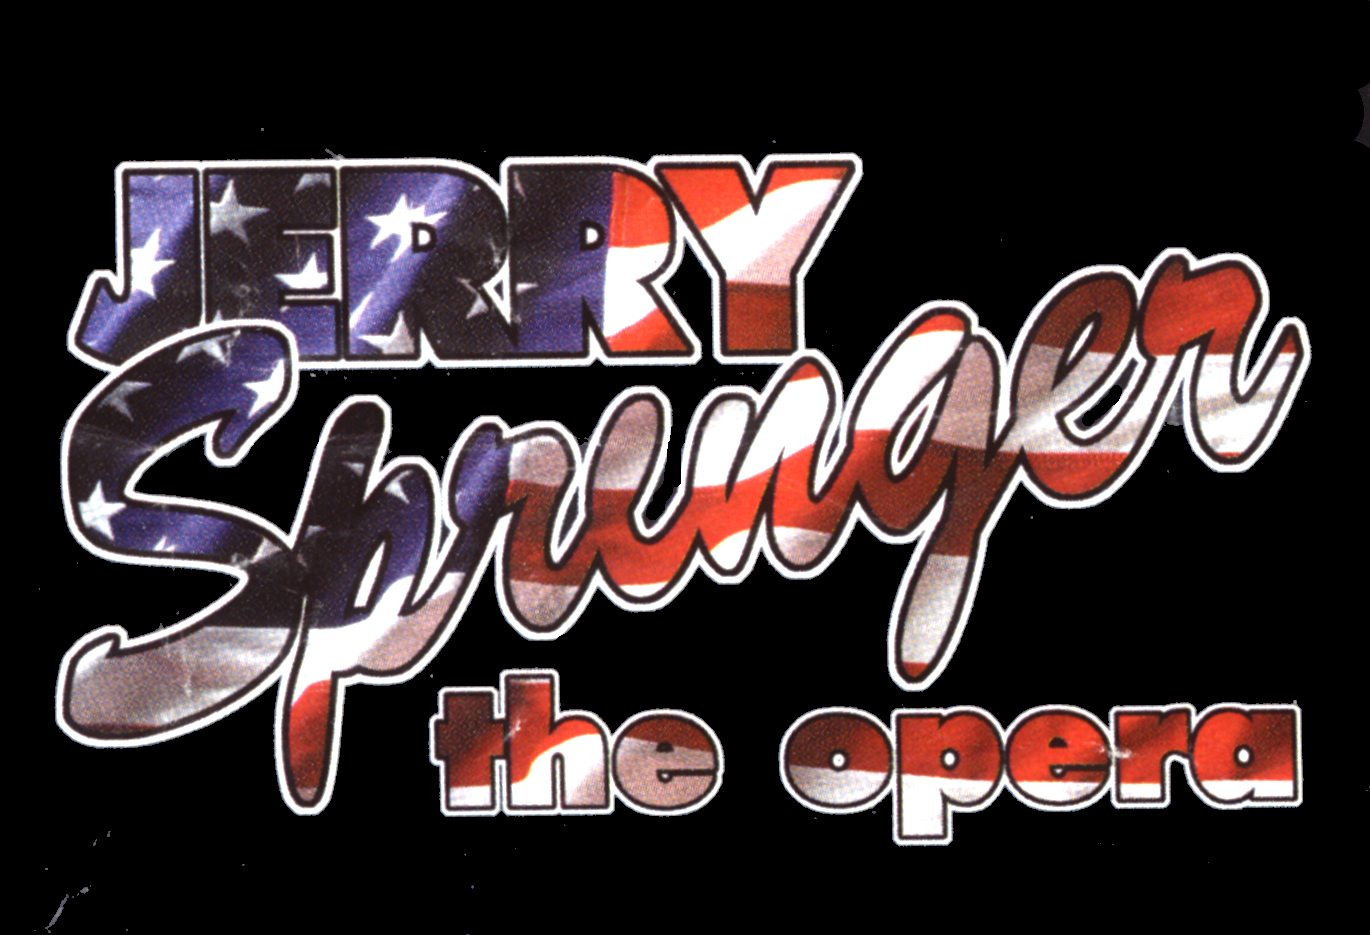 Jerry Springer: The Opera - Jerry Springer The Opera Logo